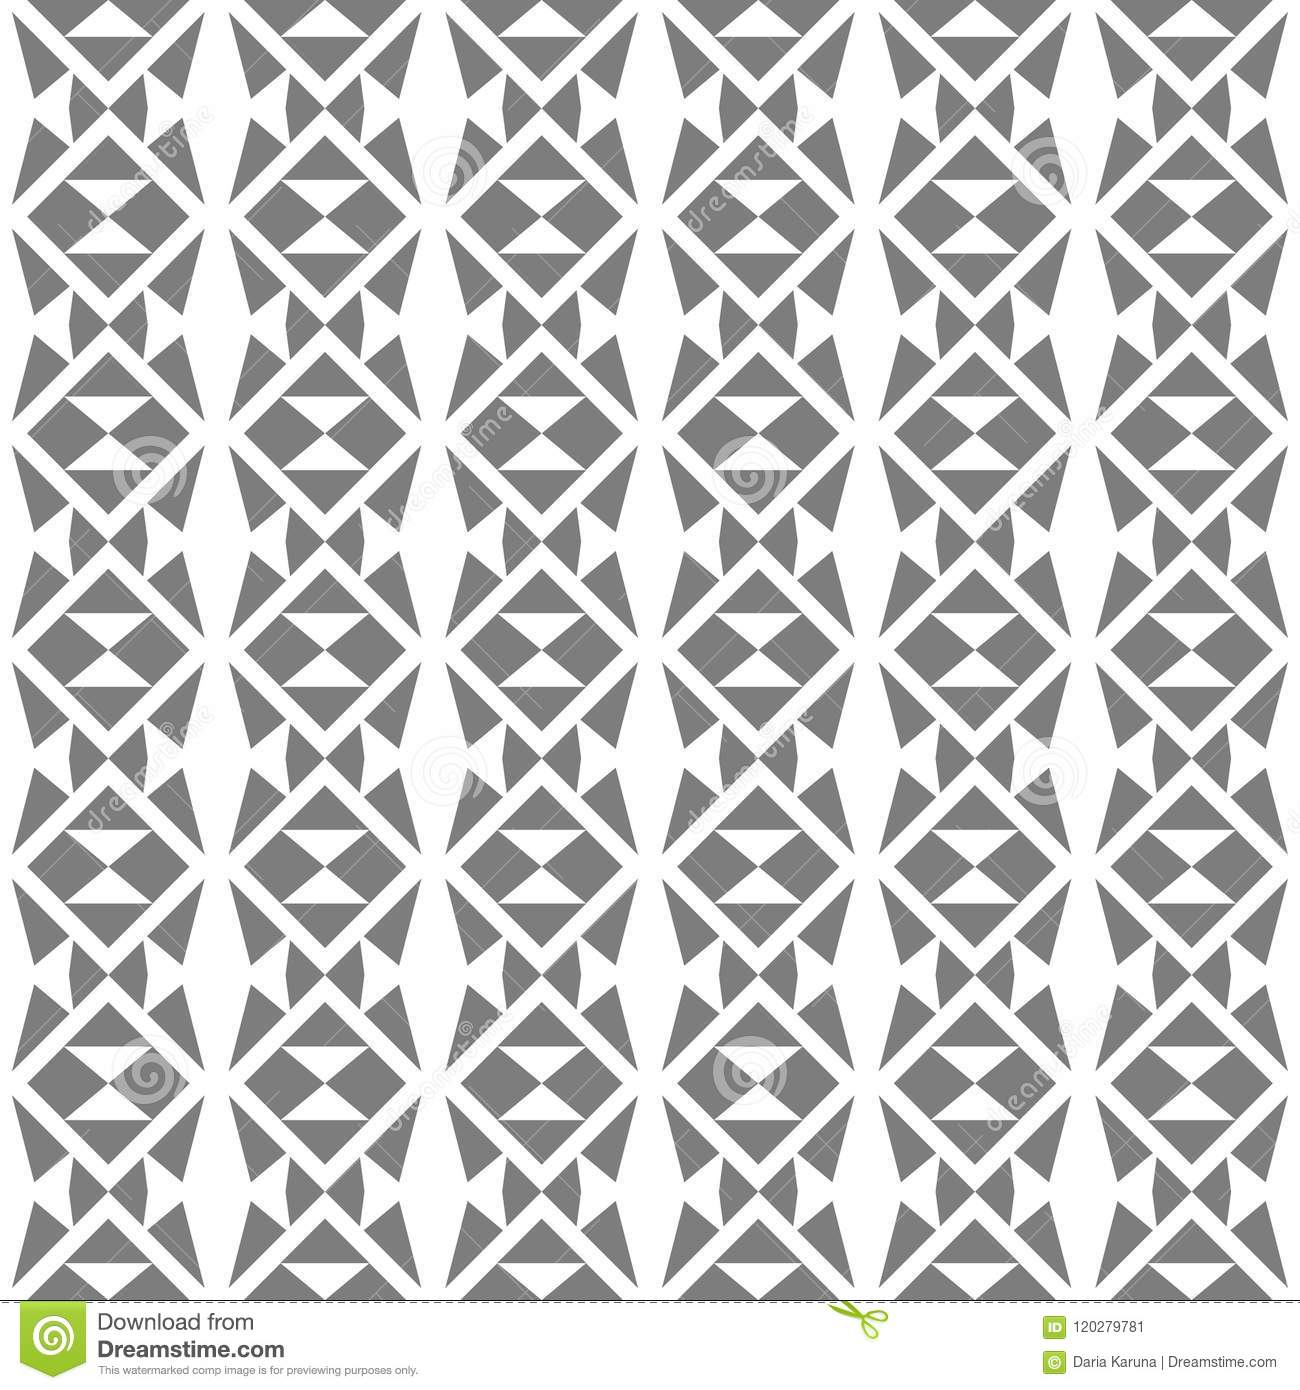 abstract seamless pattern of geometric shapes simple shapes and